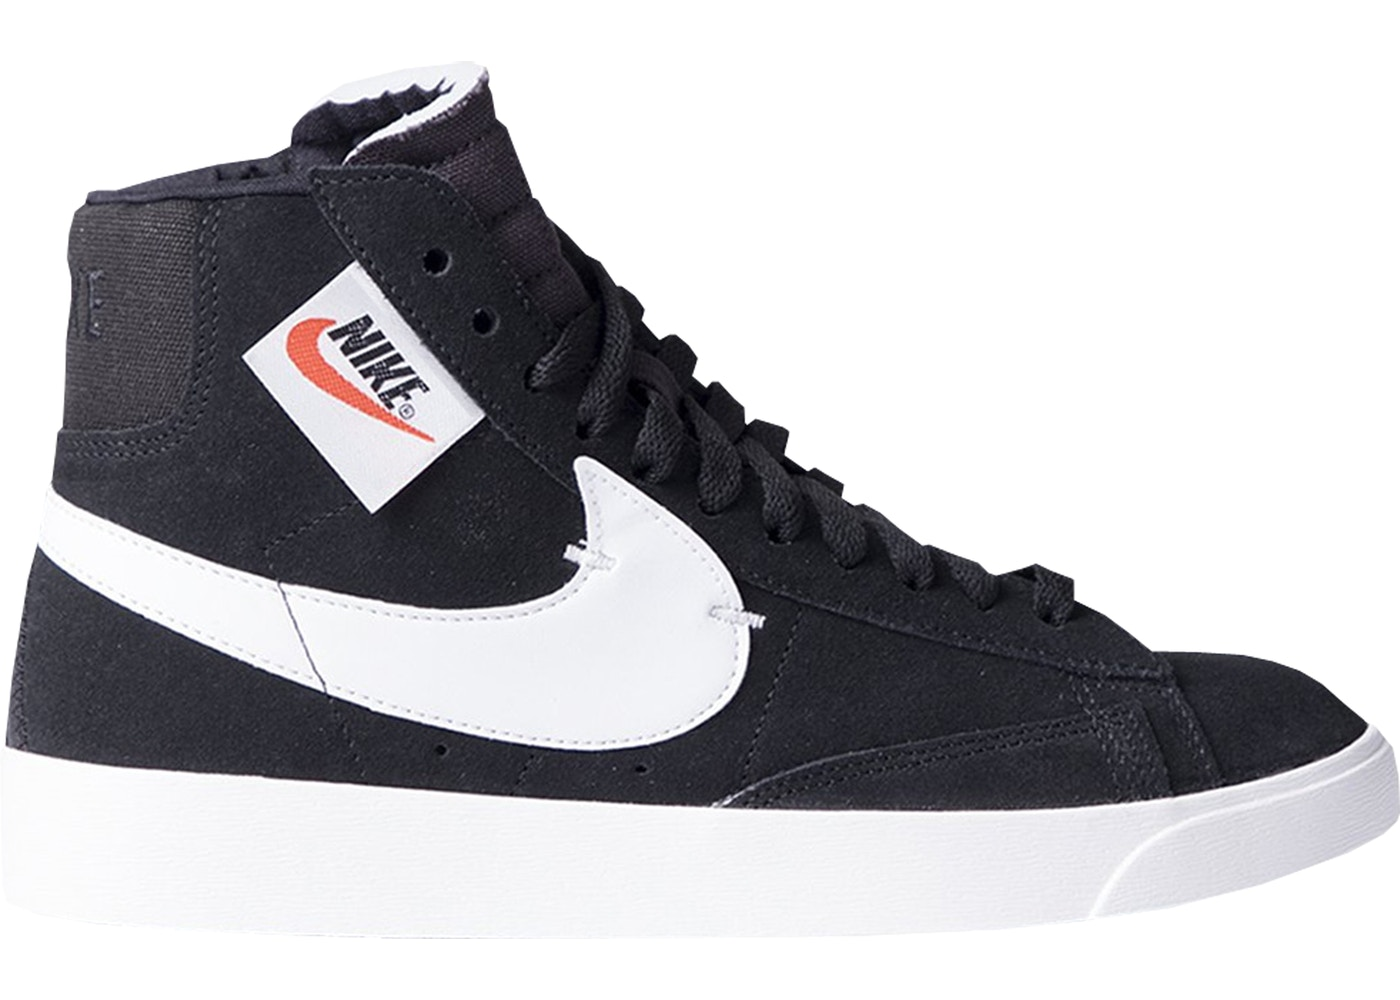 low priced 60399 f2c14 Nike Blazer Mid Rebel Black White (W) - BQ4022-001